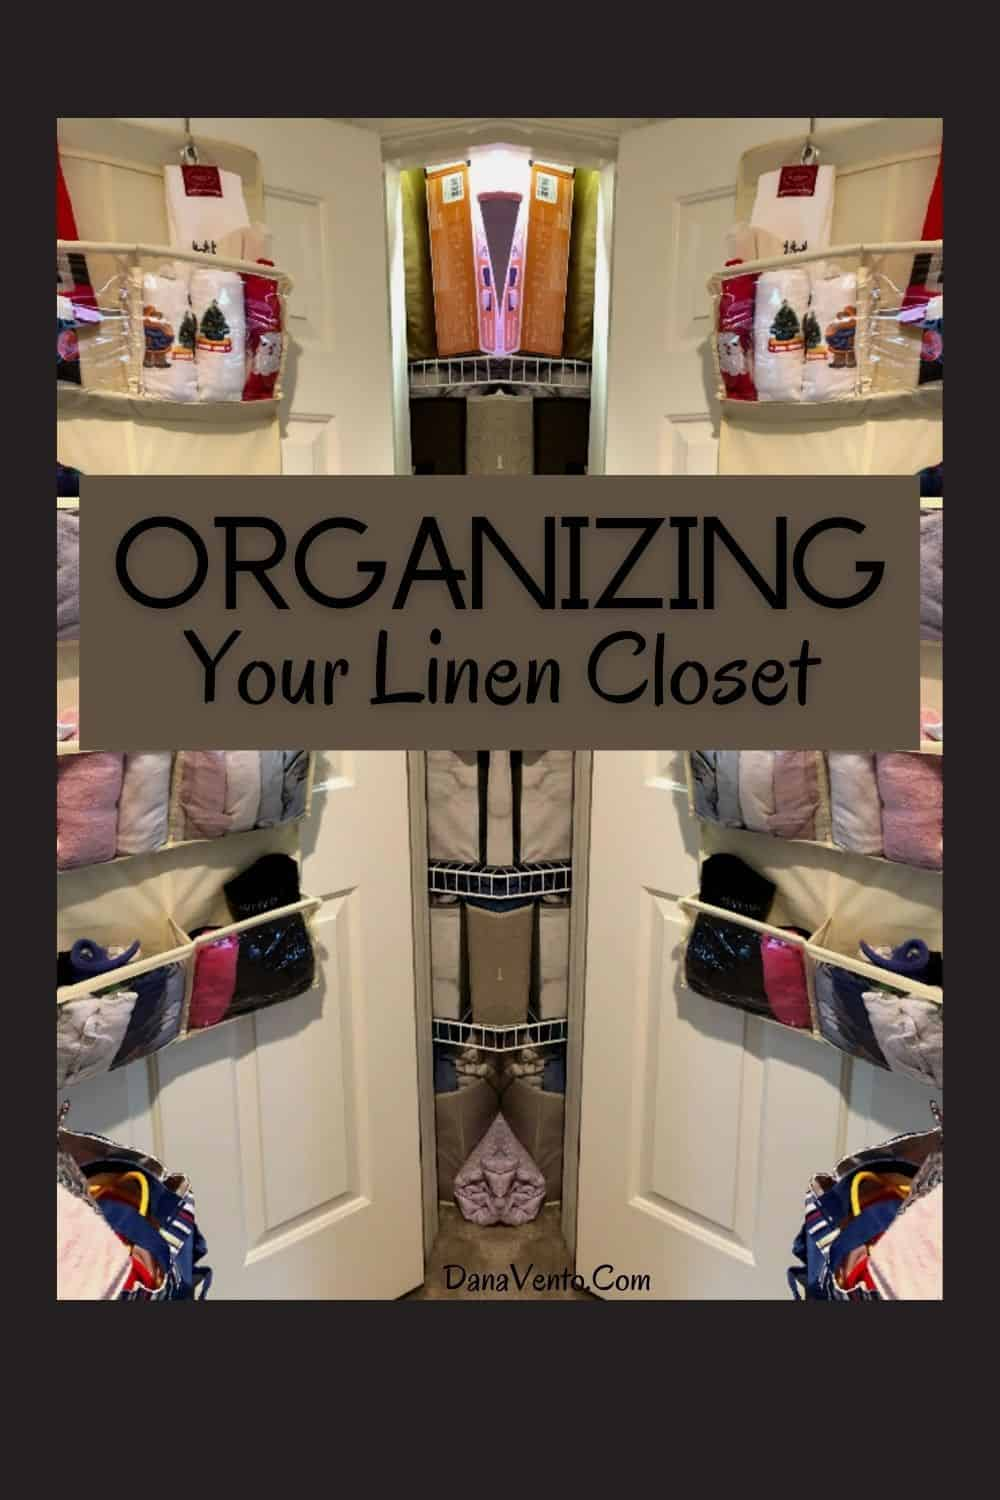 Organizing Your Linen Closet to declutter your home